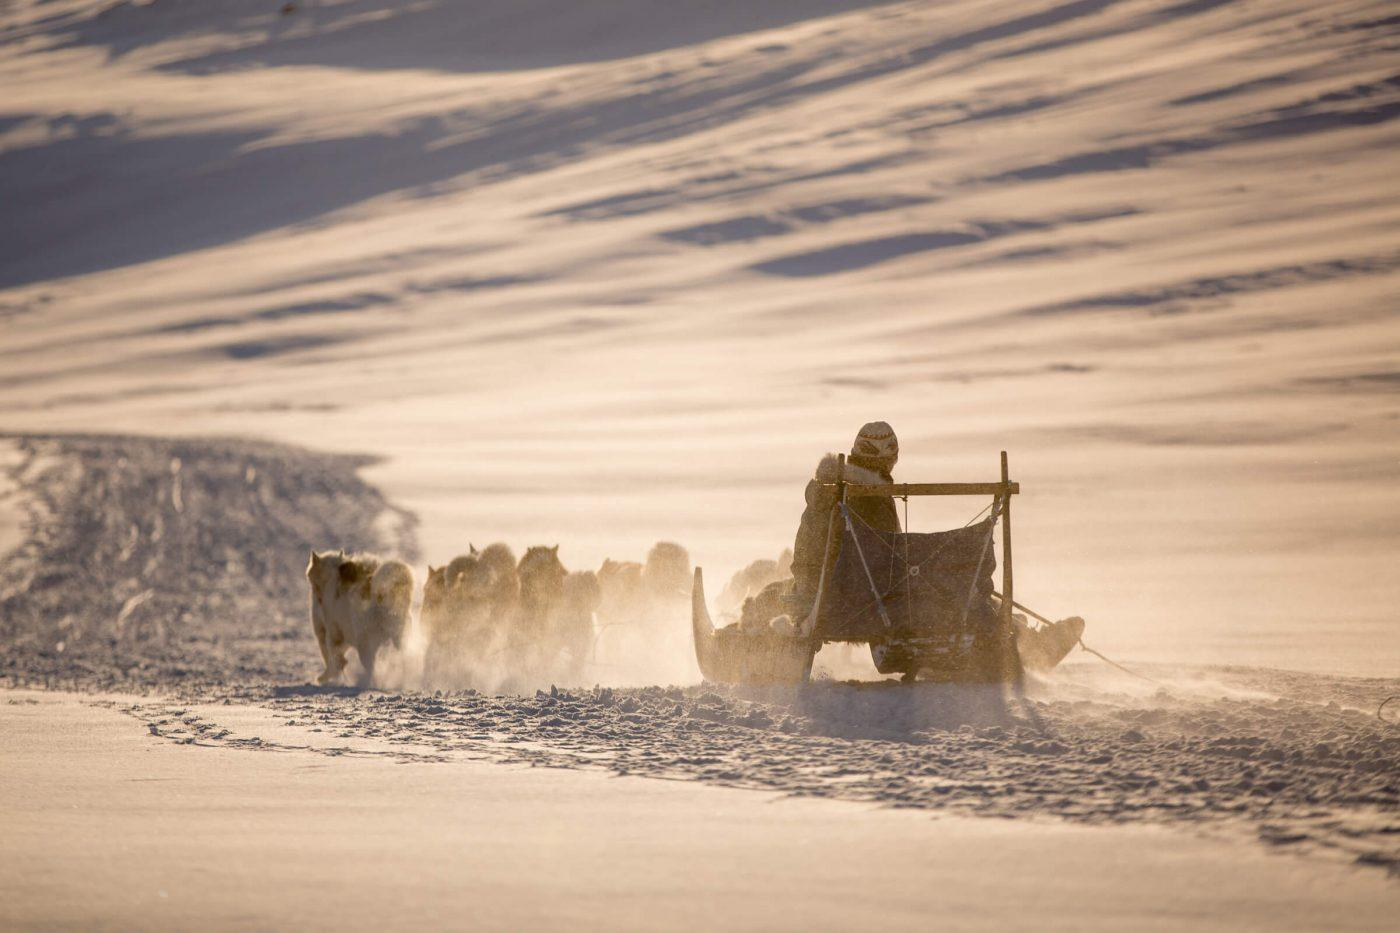 A dog sled heading home towards Sisimiut in Greenland in the setting sun. Photo by Mads Pihl